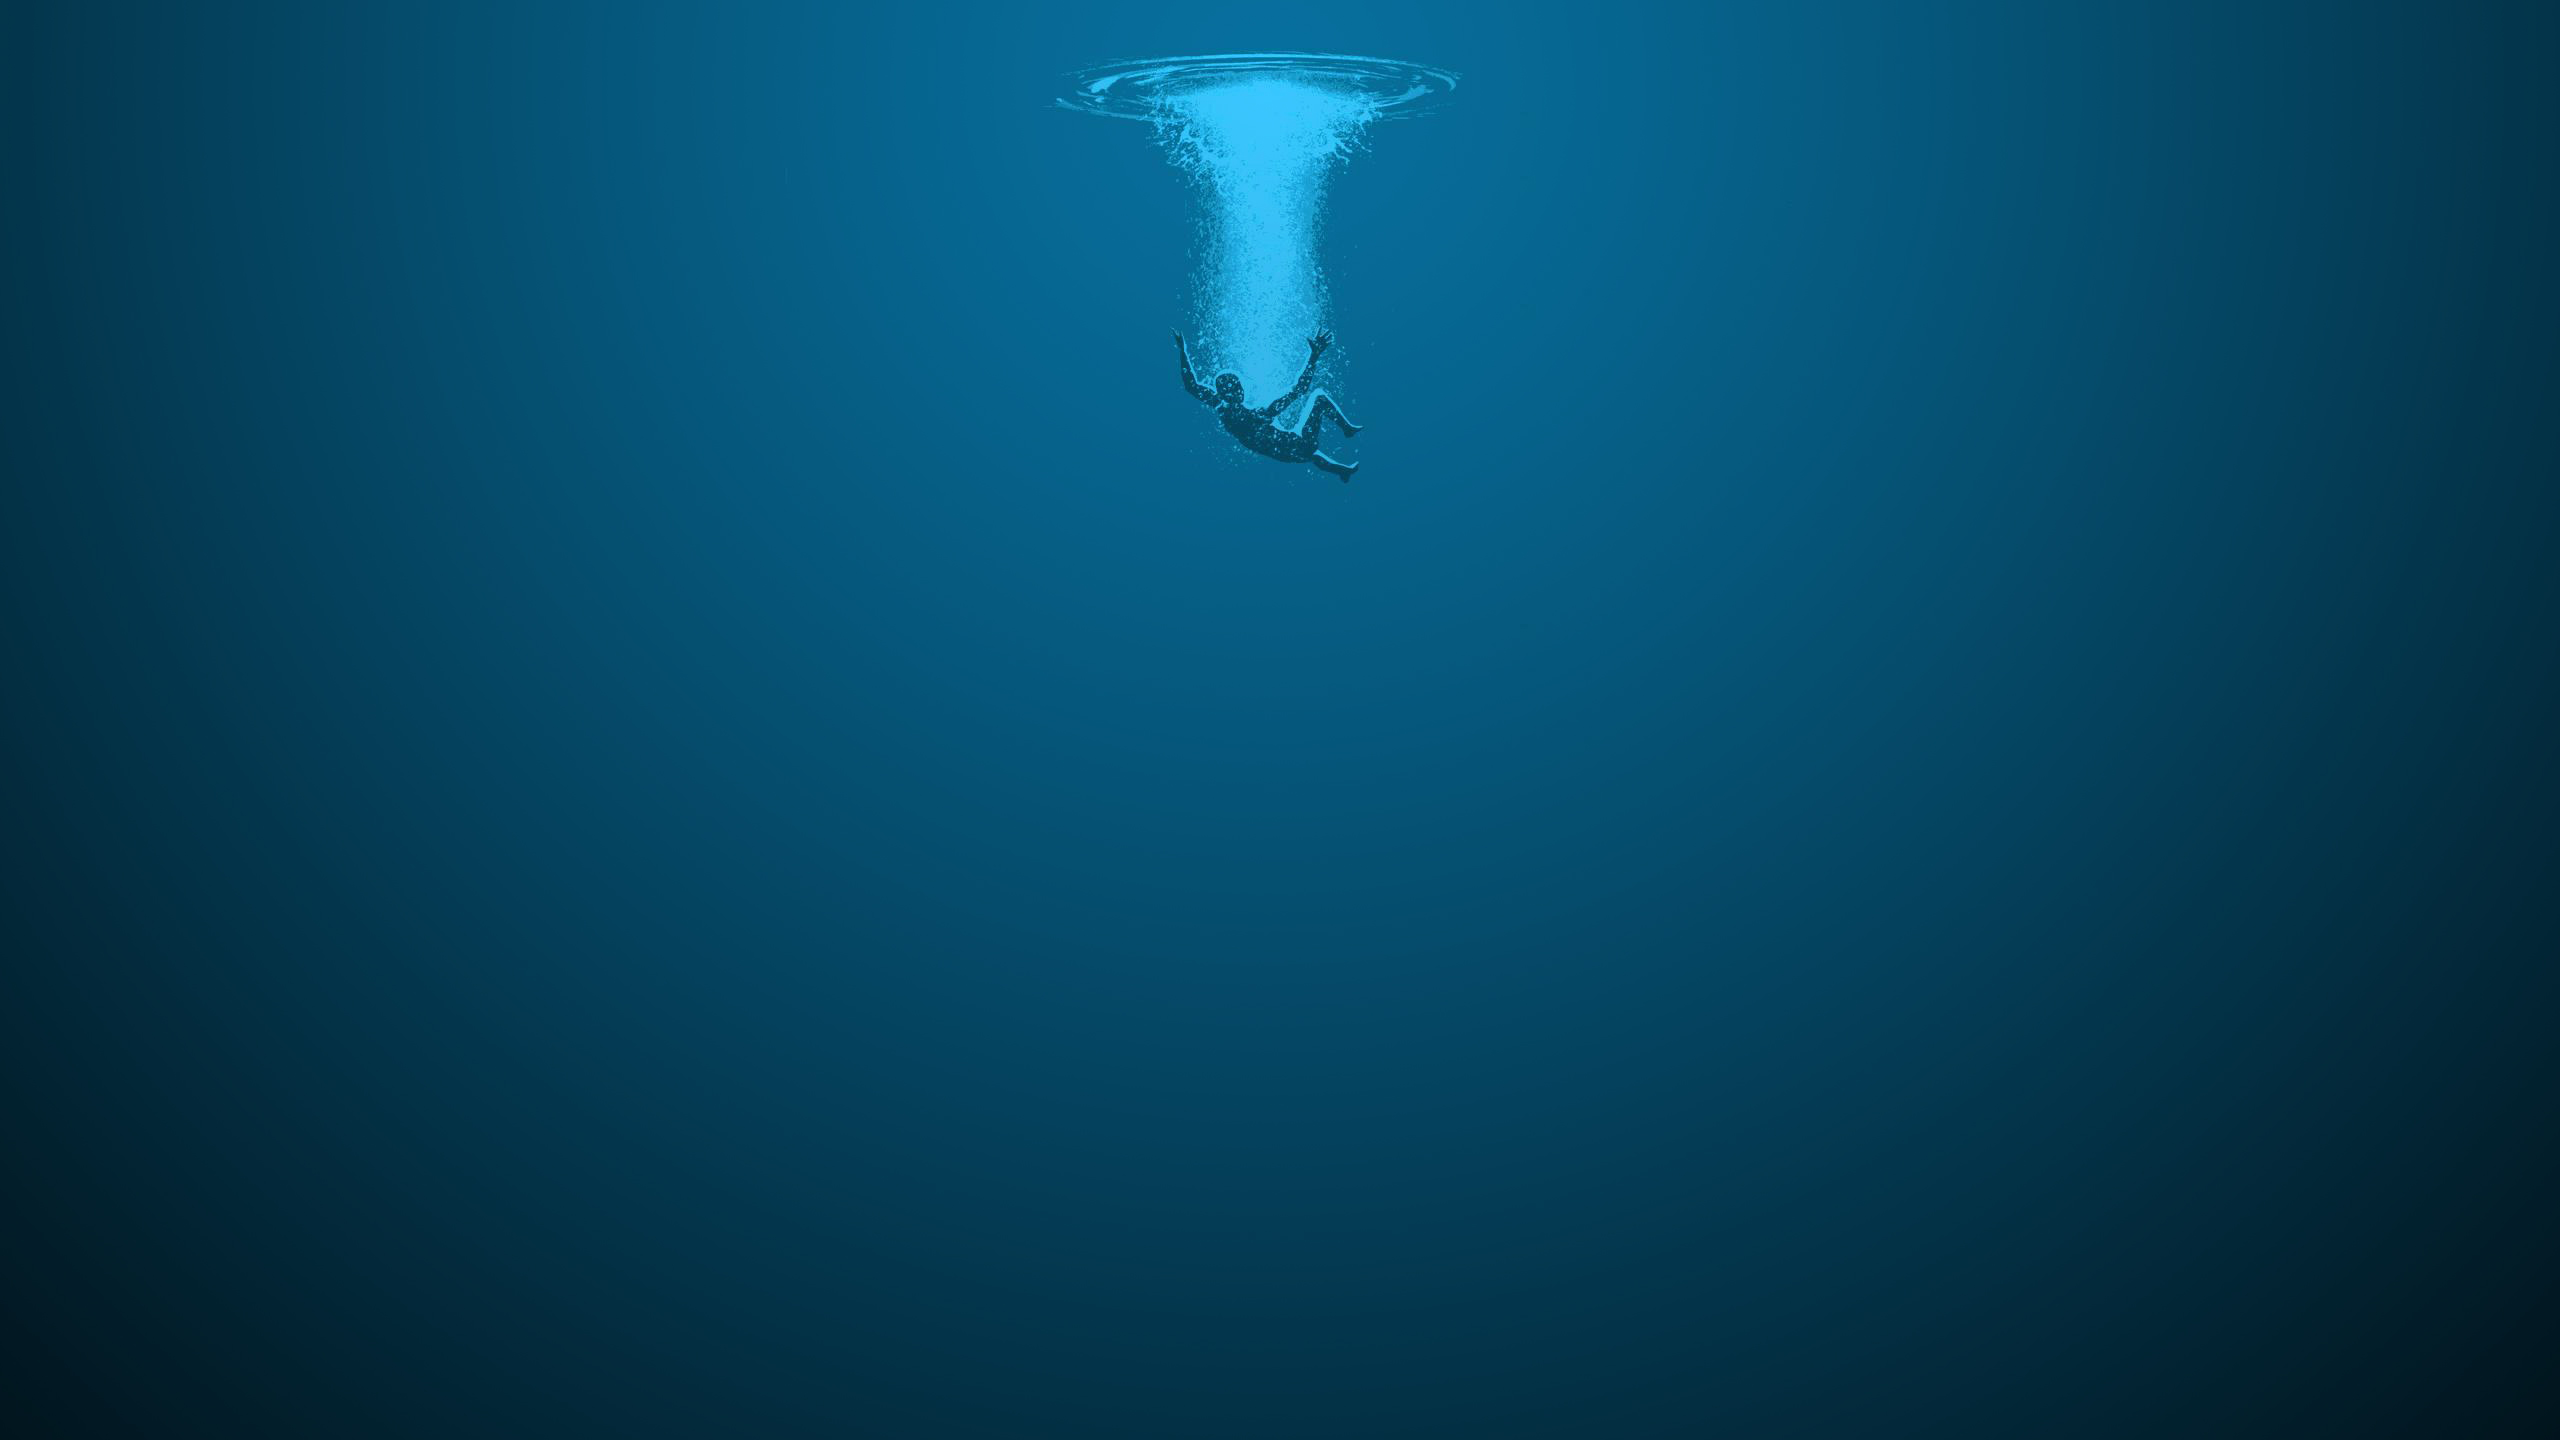 Immersed in the cold open waters. Falling. Plunging into the depths of the sea, with no grasp of the air I need… | Underwater wallpaper,  Ocean wallpaper, Underwater